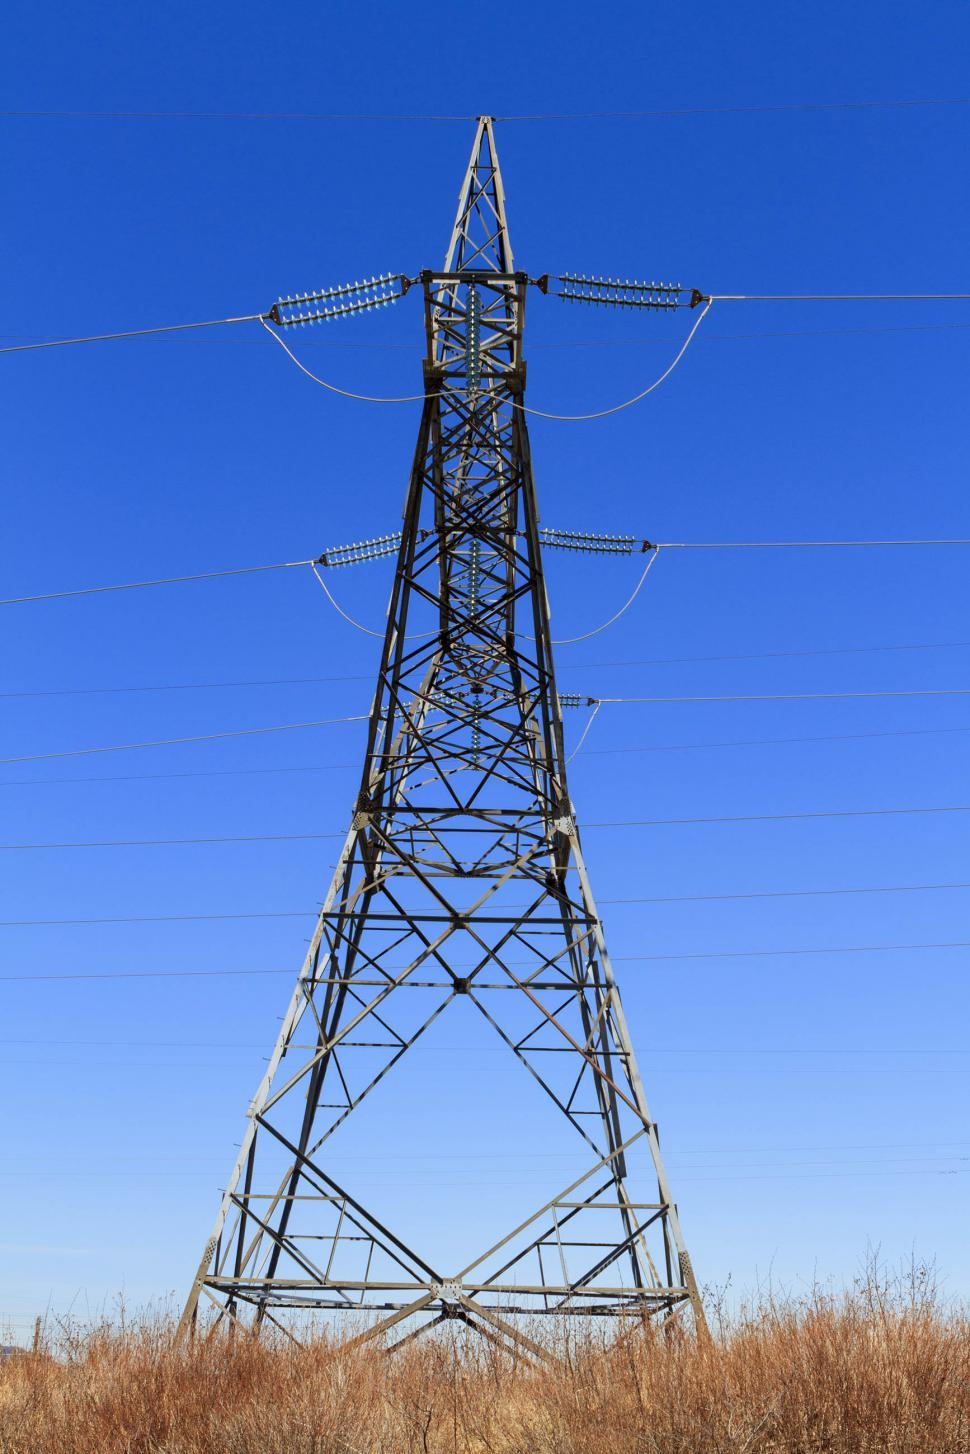 Download Free Stock Photo of Side view of high voltage tower